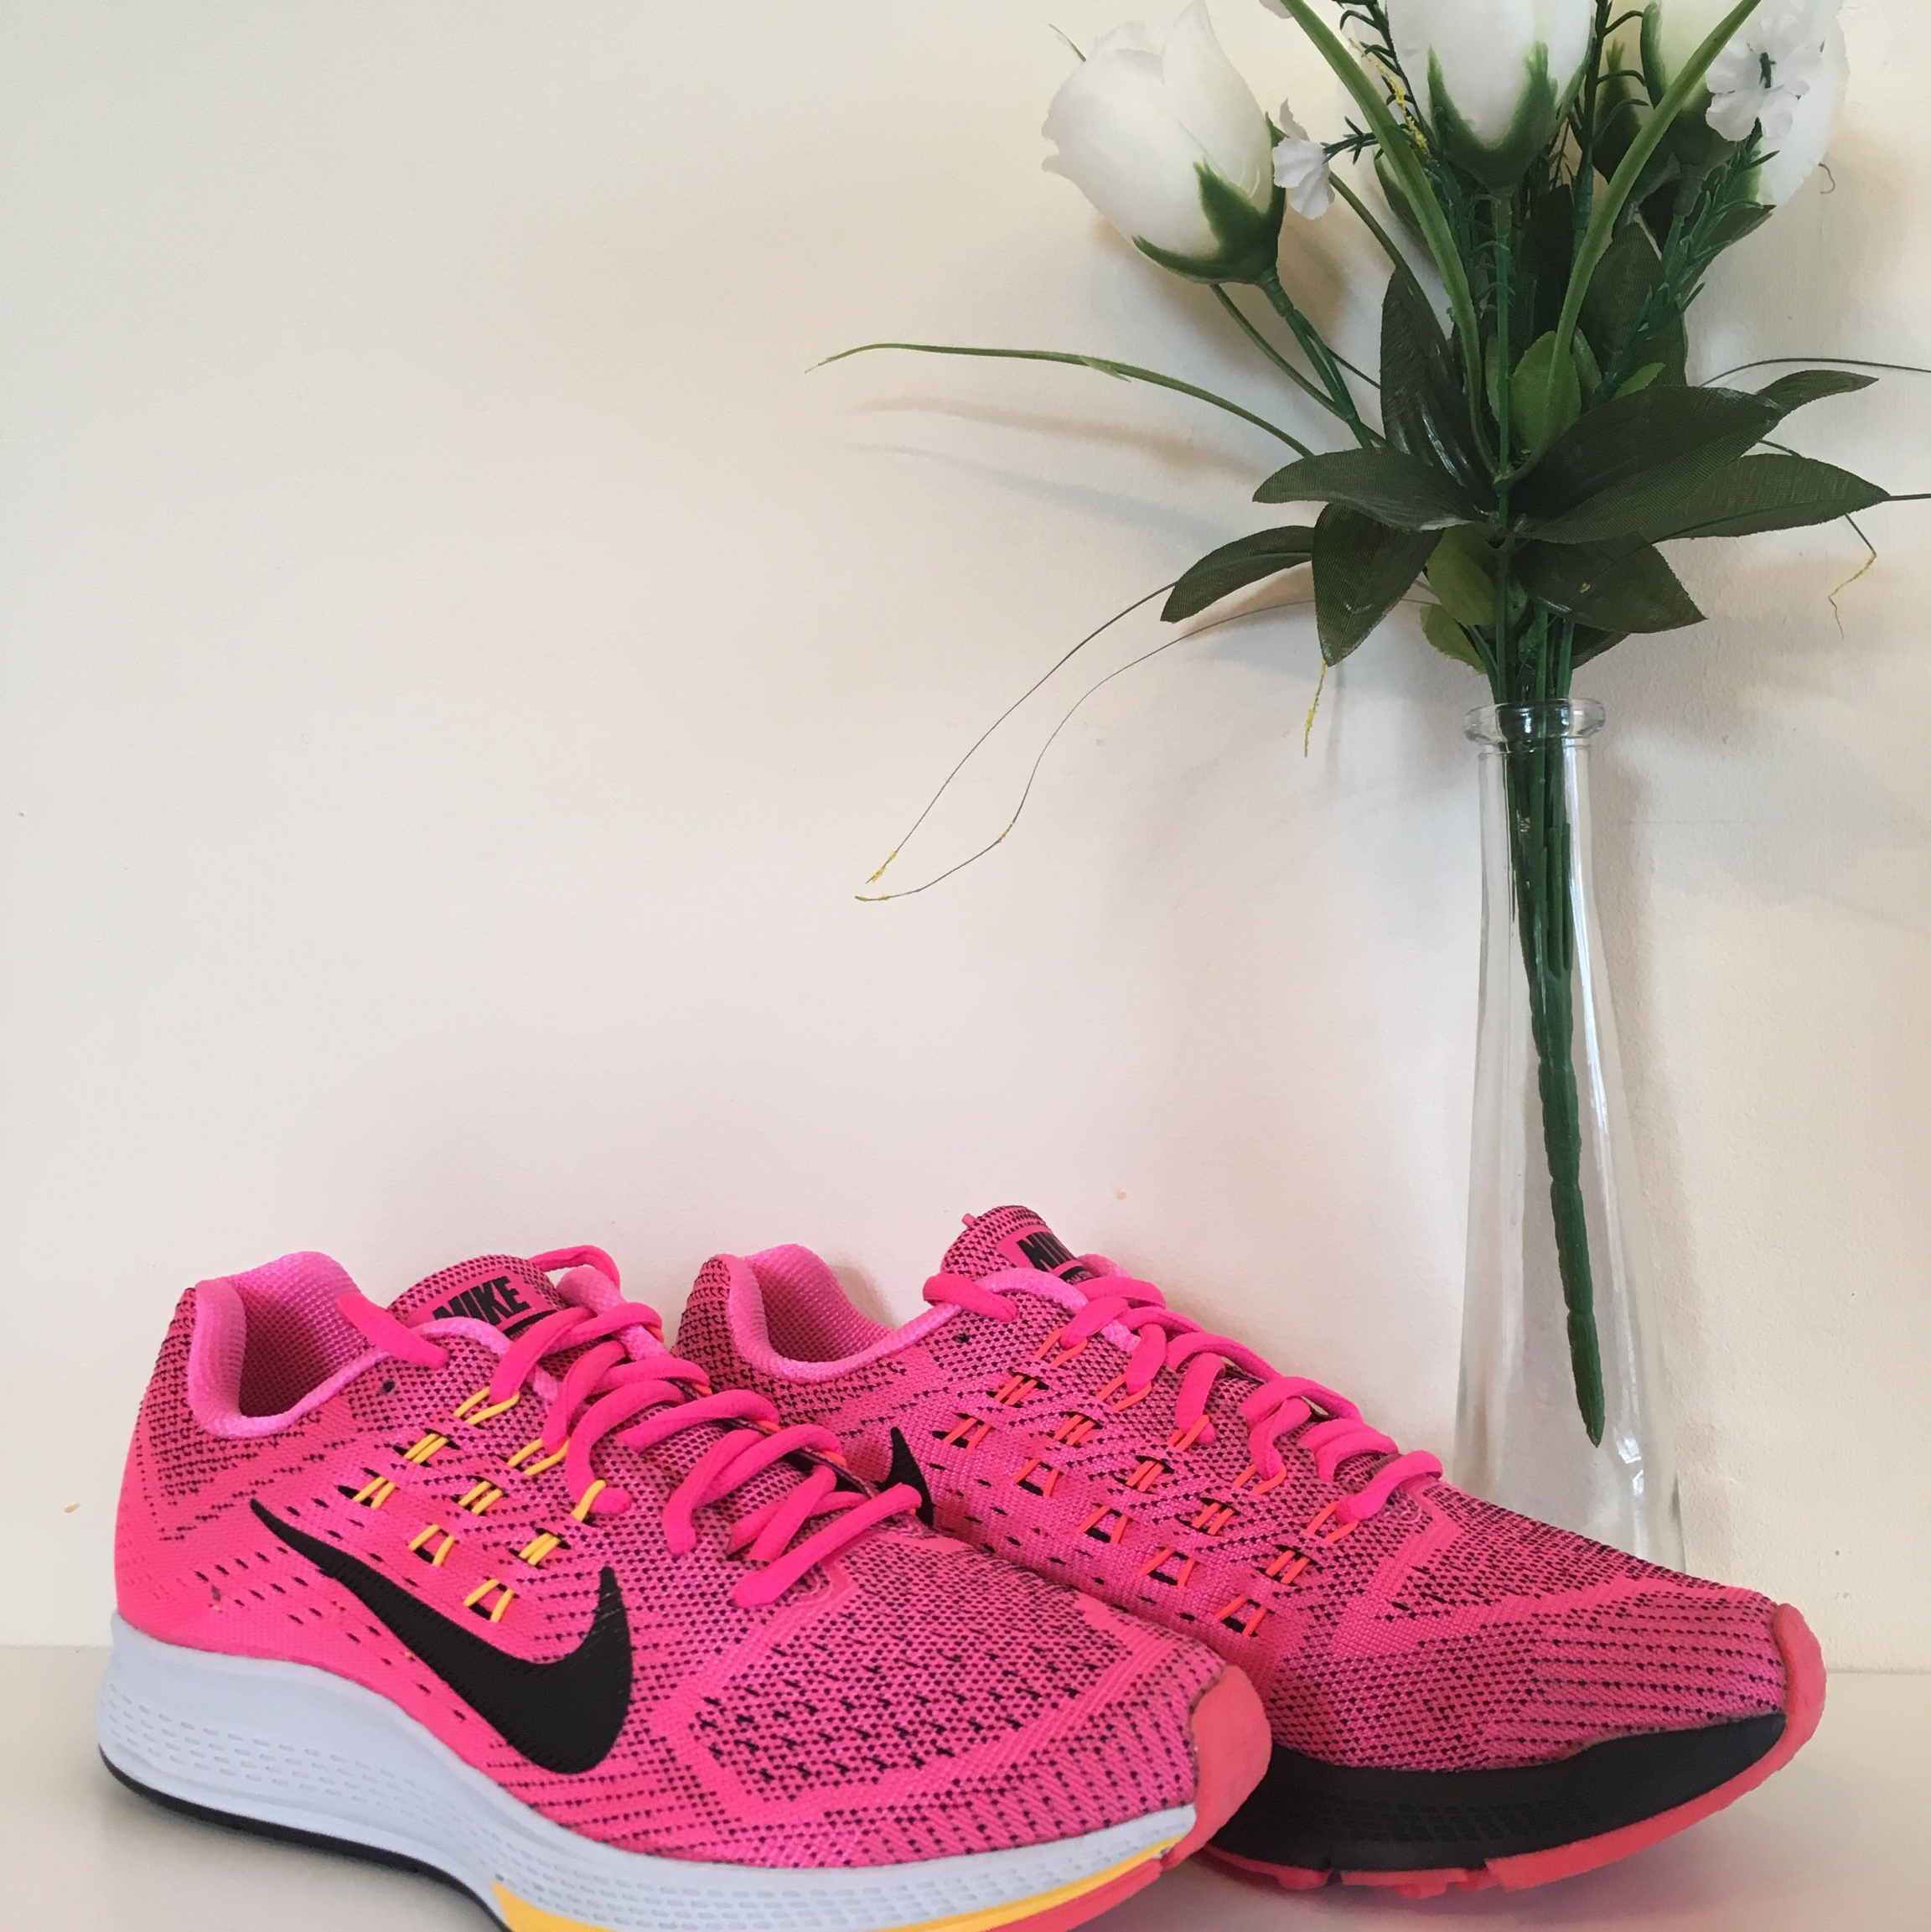 quality design 328f2 5760d  katyxoxox. last year. Leeds, United Kingdom. Nike Air Zoom Structure 18 ...